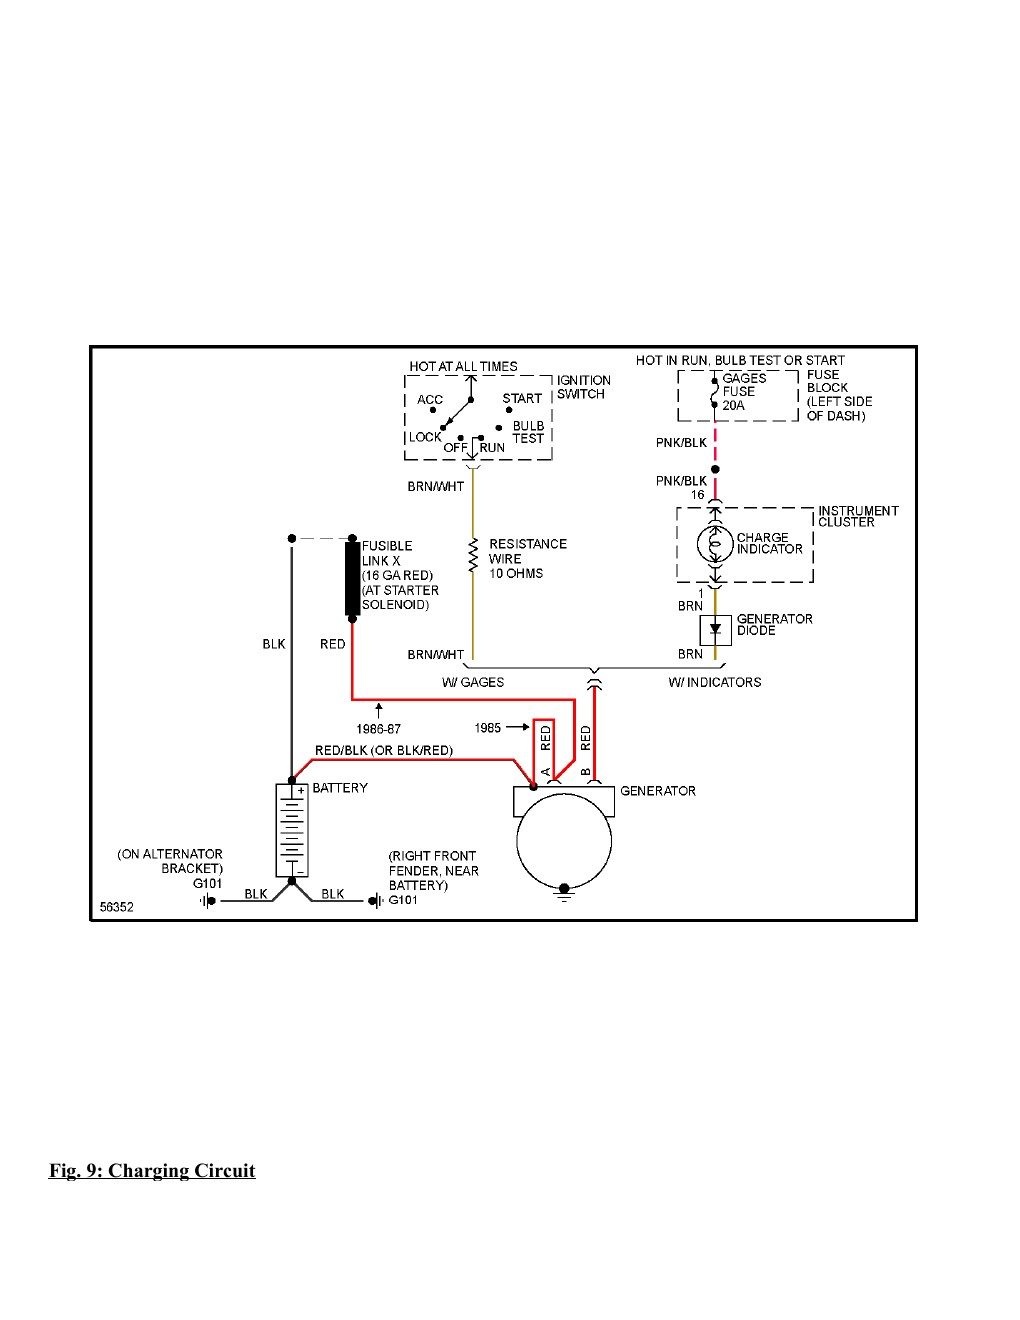 2011 schematic wiring diagrams solutions so here are the wiring diagrams for 1995 chevrolet monte carlo ss click on the images for detail view